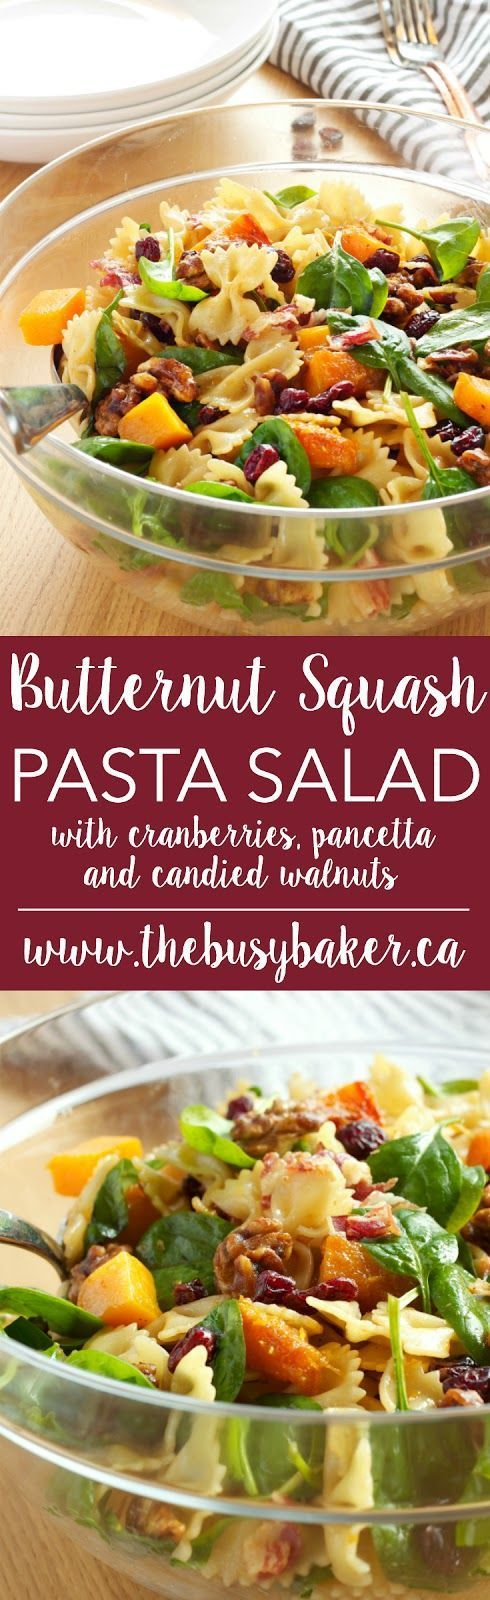 Butternut Squash Pasta Salad with Cranberries, Pancetta and Candied Walnuts http://www.thebusybaker.ca